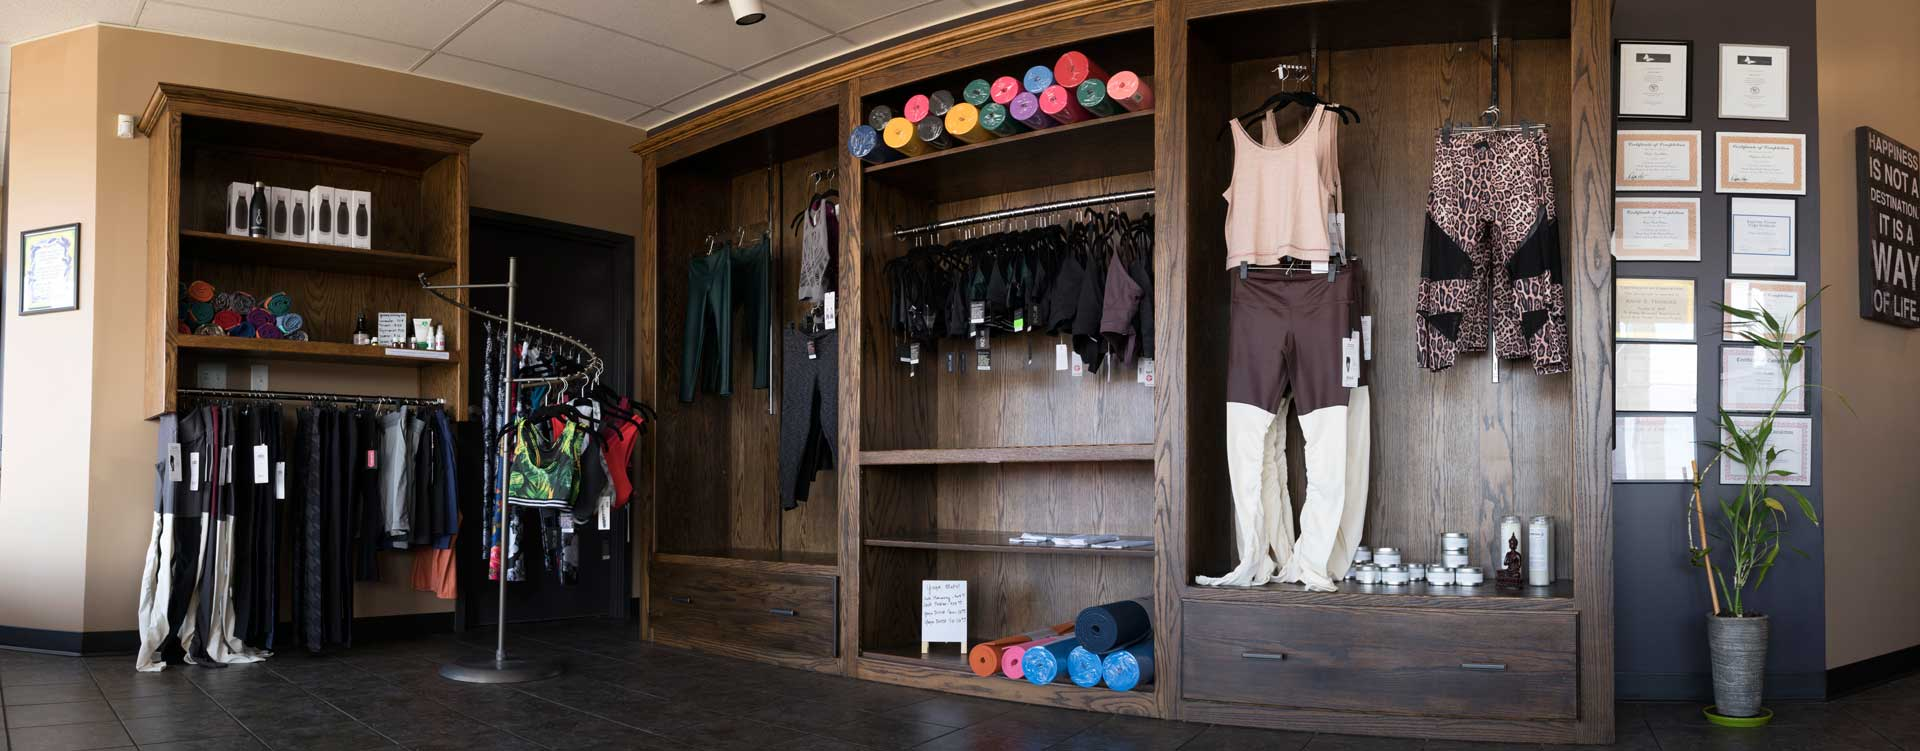 Photo of the Boutique store in Sumits Hot Yoga studio Springfield, MO